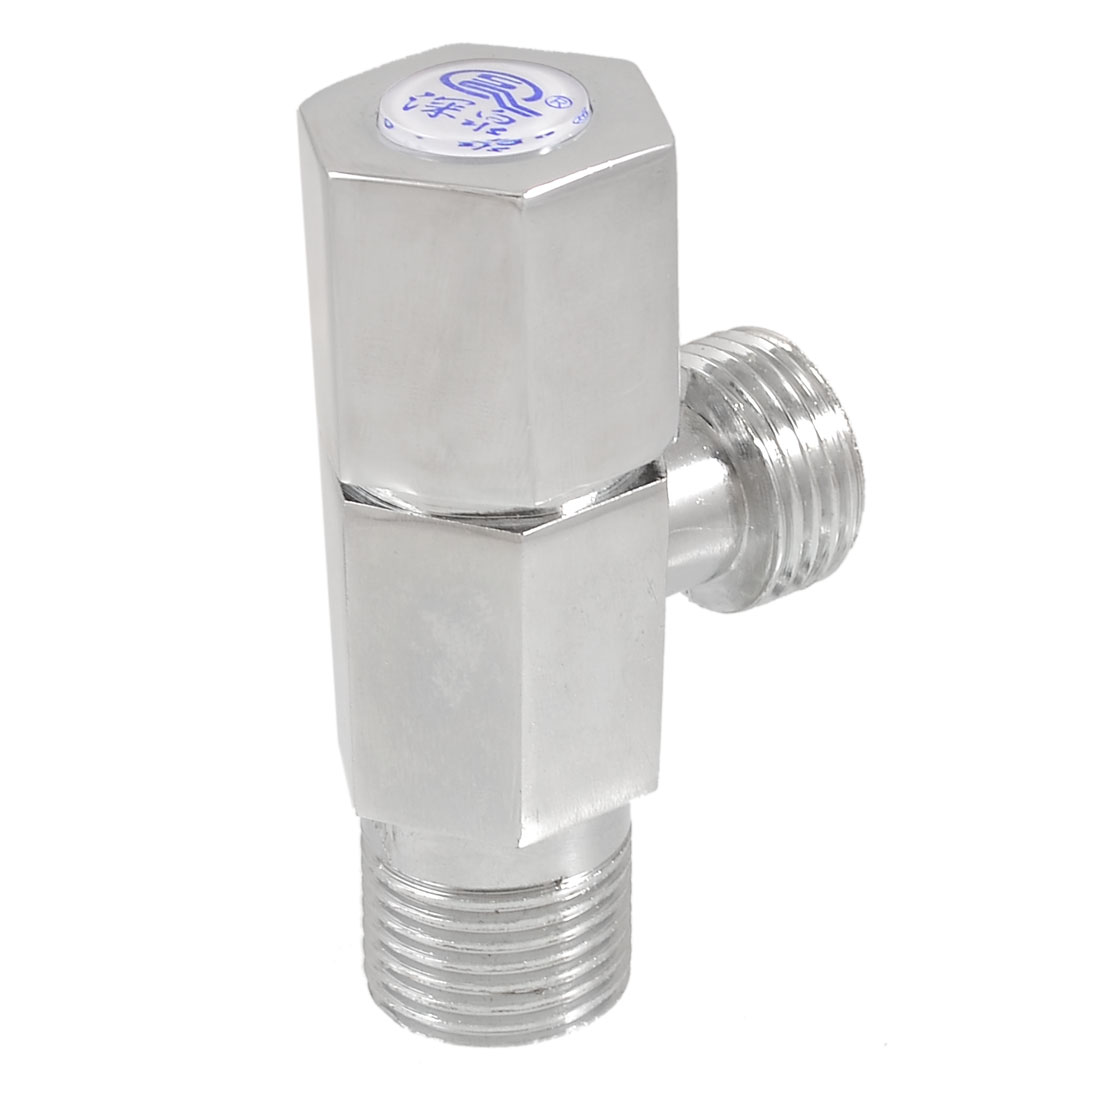 Kitchen Chrome Plated Male Thread Hex Knob Water Control Angle Valve